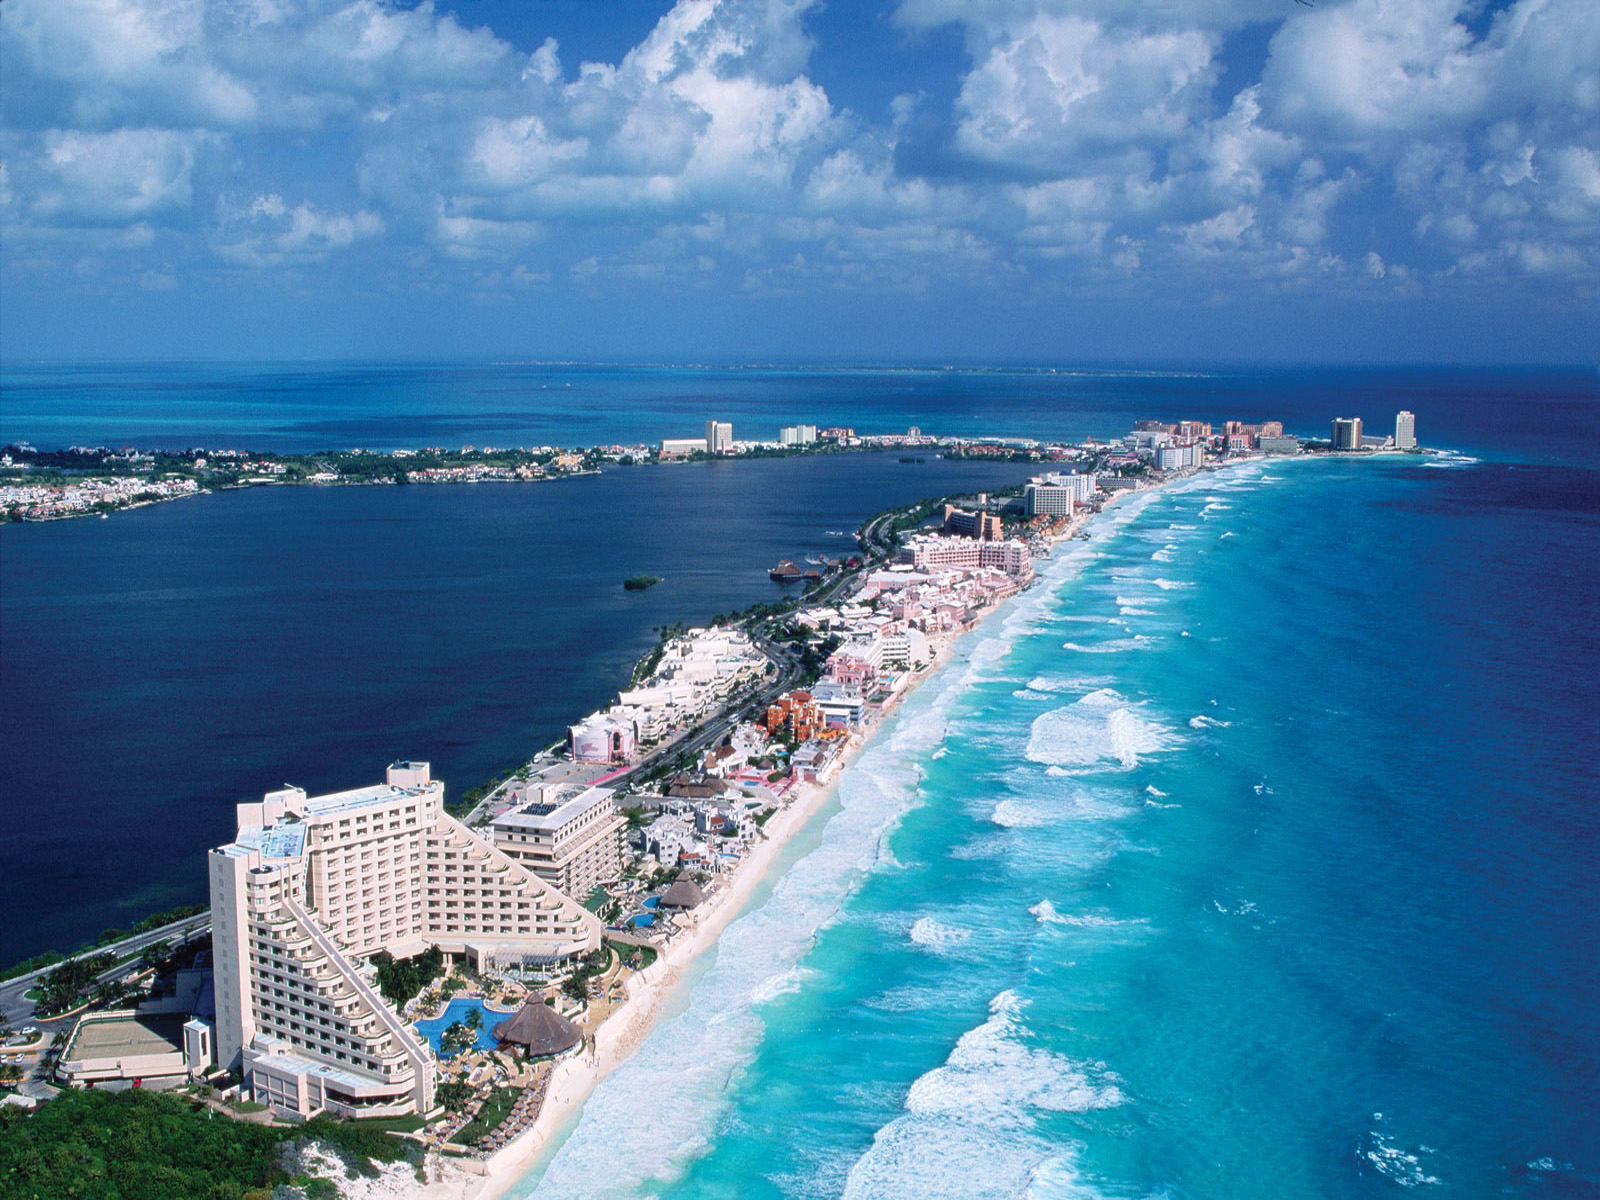 Free Download Cancun Mexico Wallpaper Ibackgroundwallpaper 1600x1200 For Your Desktop Mobile Tablet Explore 41 Cancun Mexico Wallpaper Mexico Beach Wallpaper Mexico Desktop Wallpaper Cancun Wallpaper Desktop